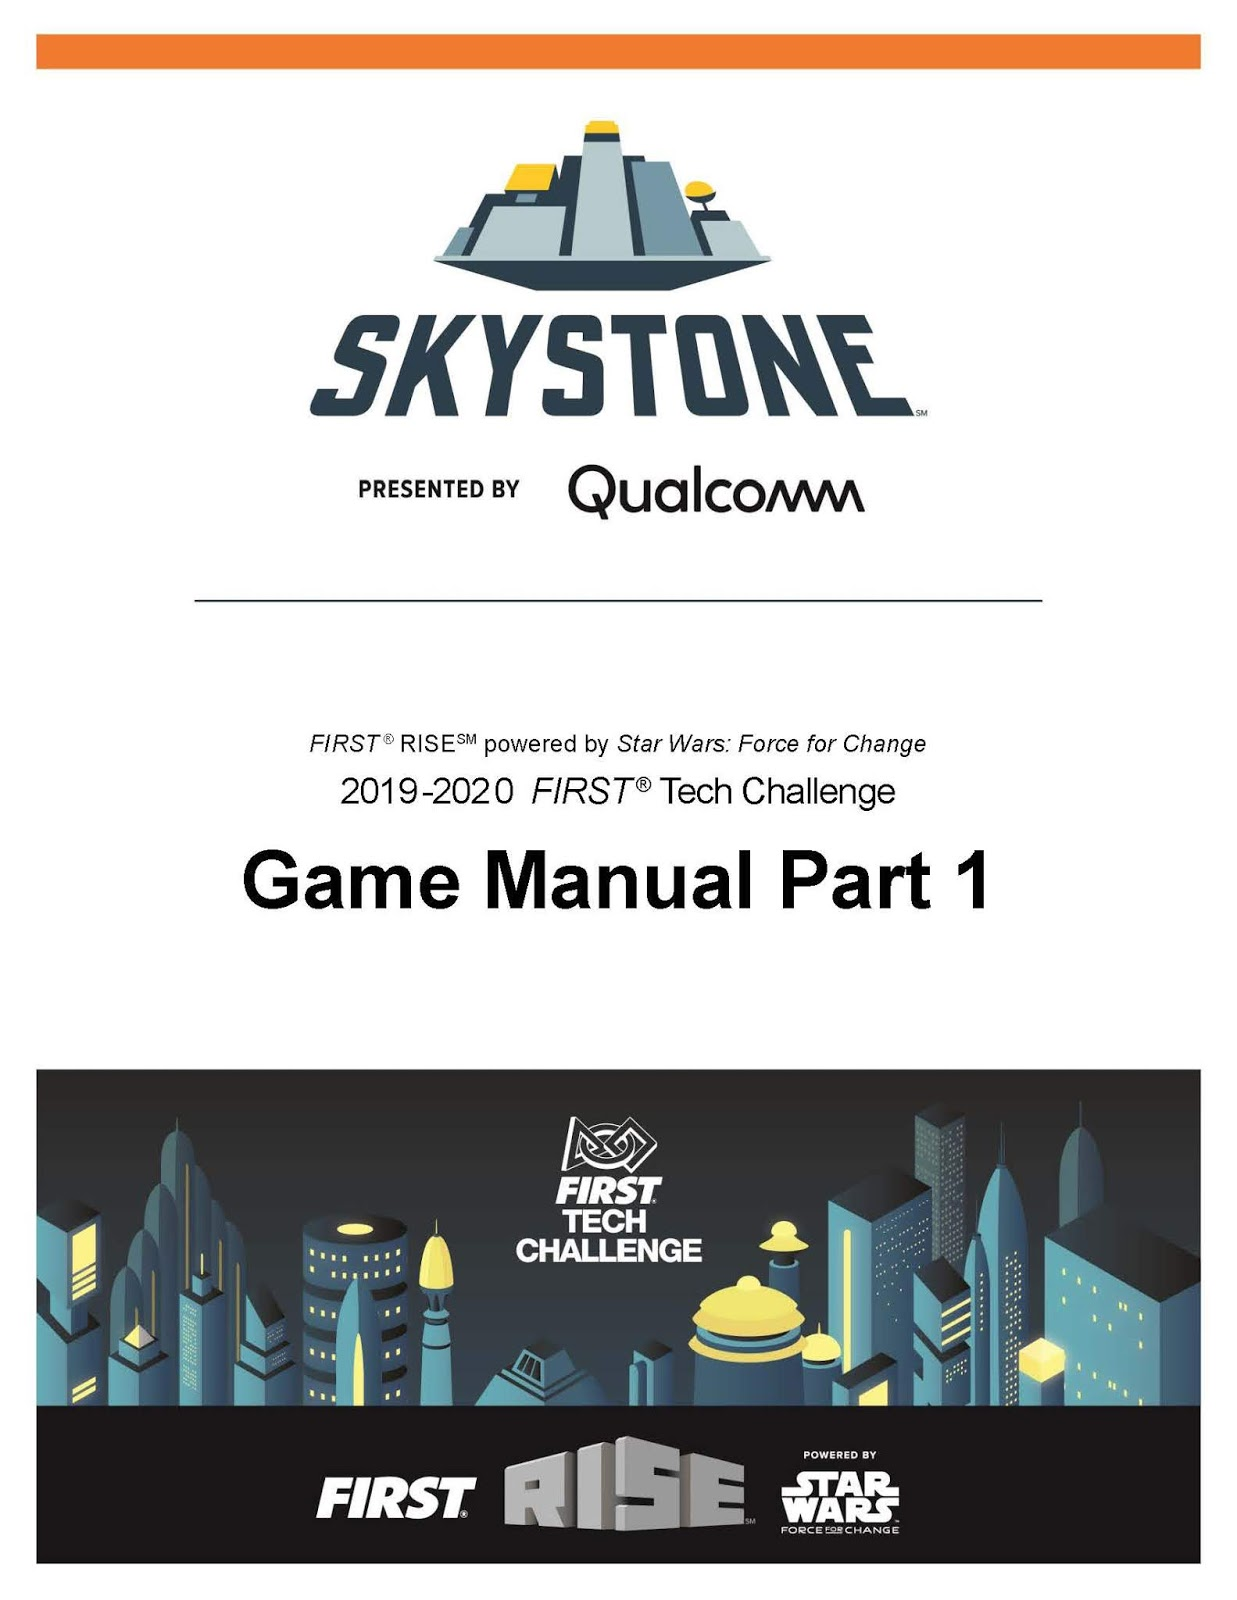 Game Manual Part 1 Release | FIRST Tech Challenge